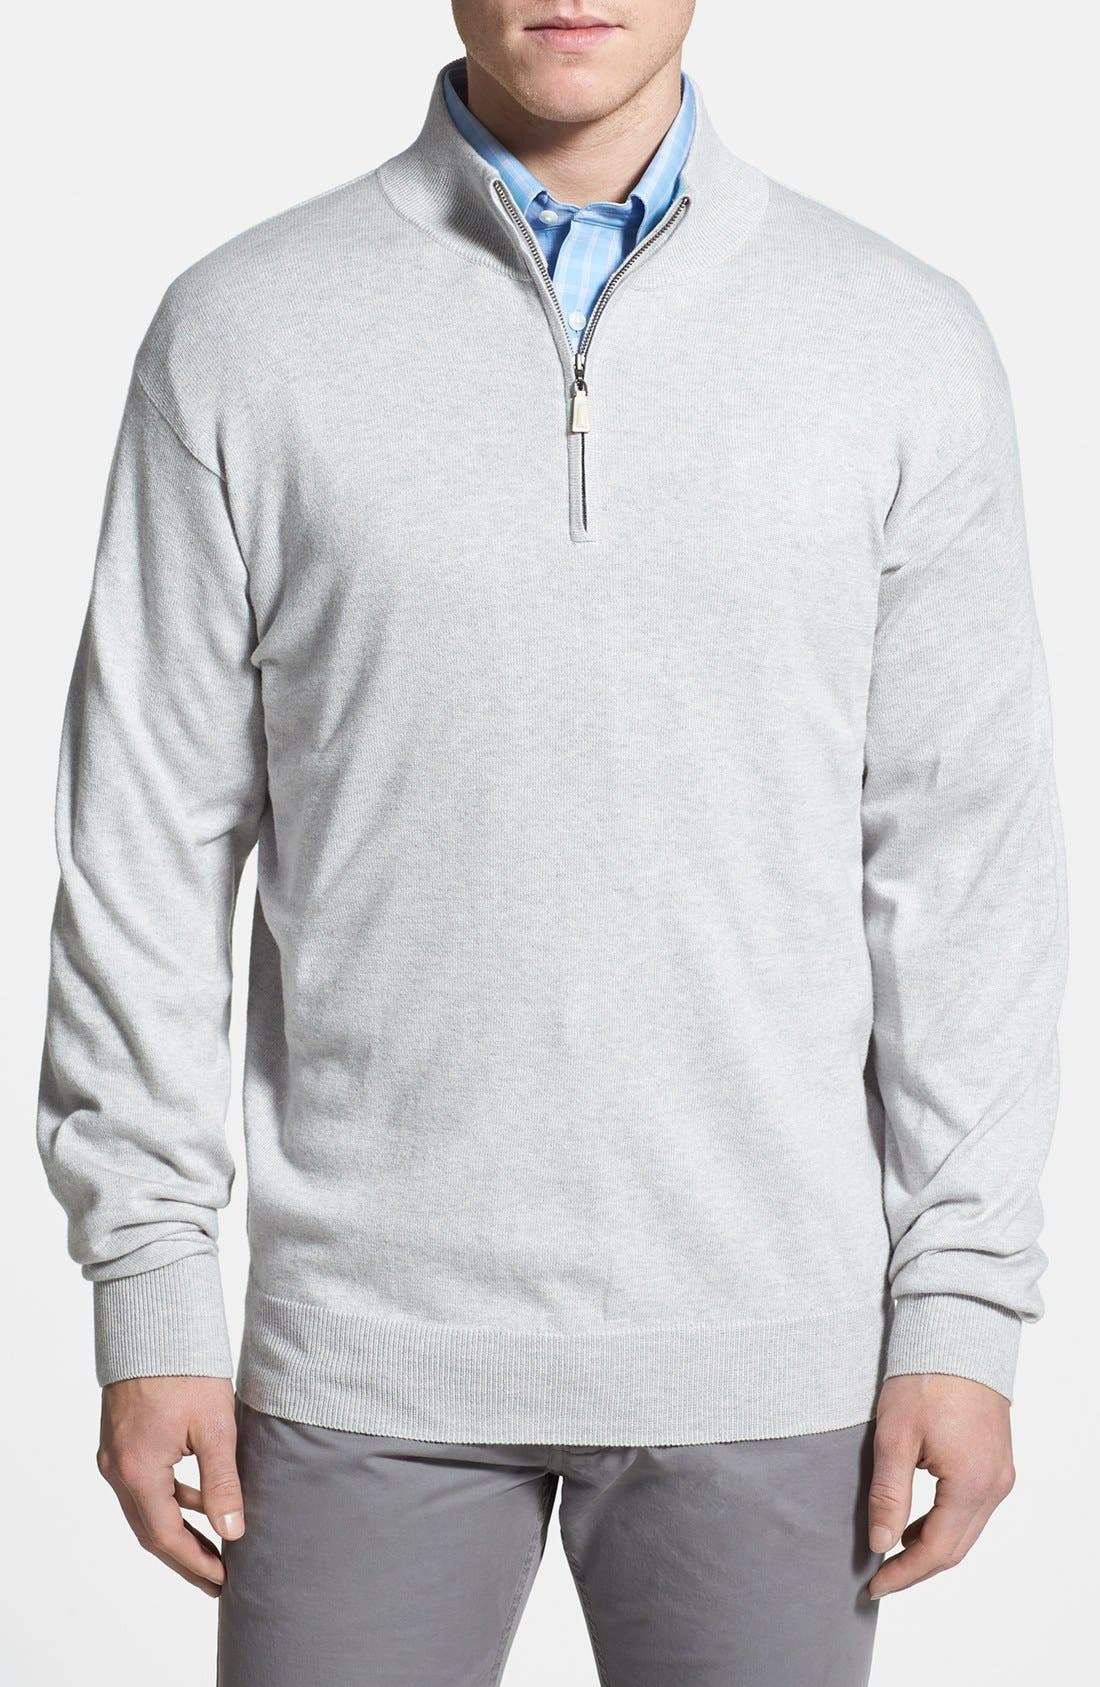 Main Image - Peter Millar Cotton & Cashmere Quarter Zip Sweater